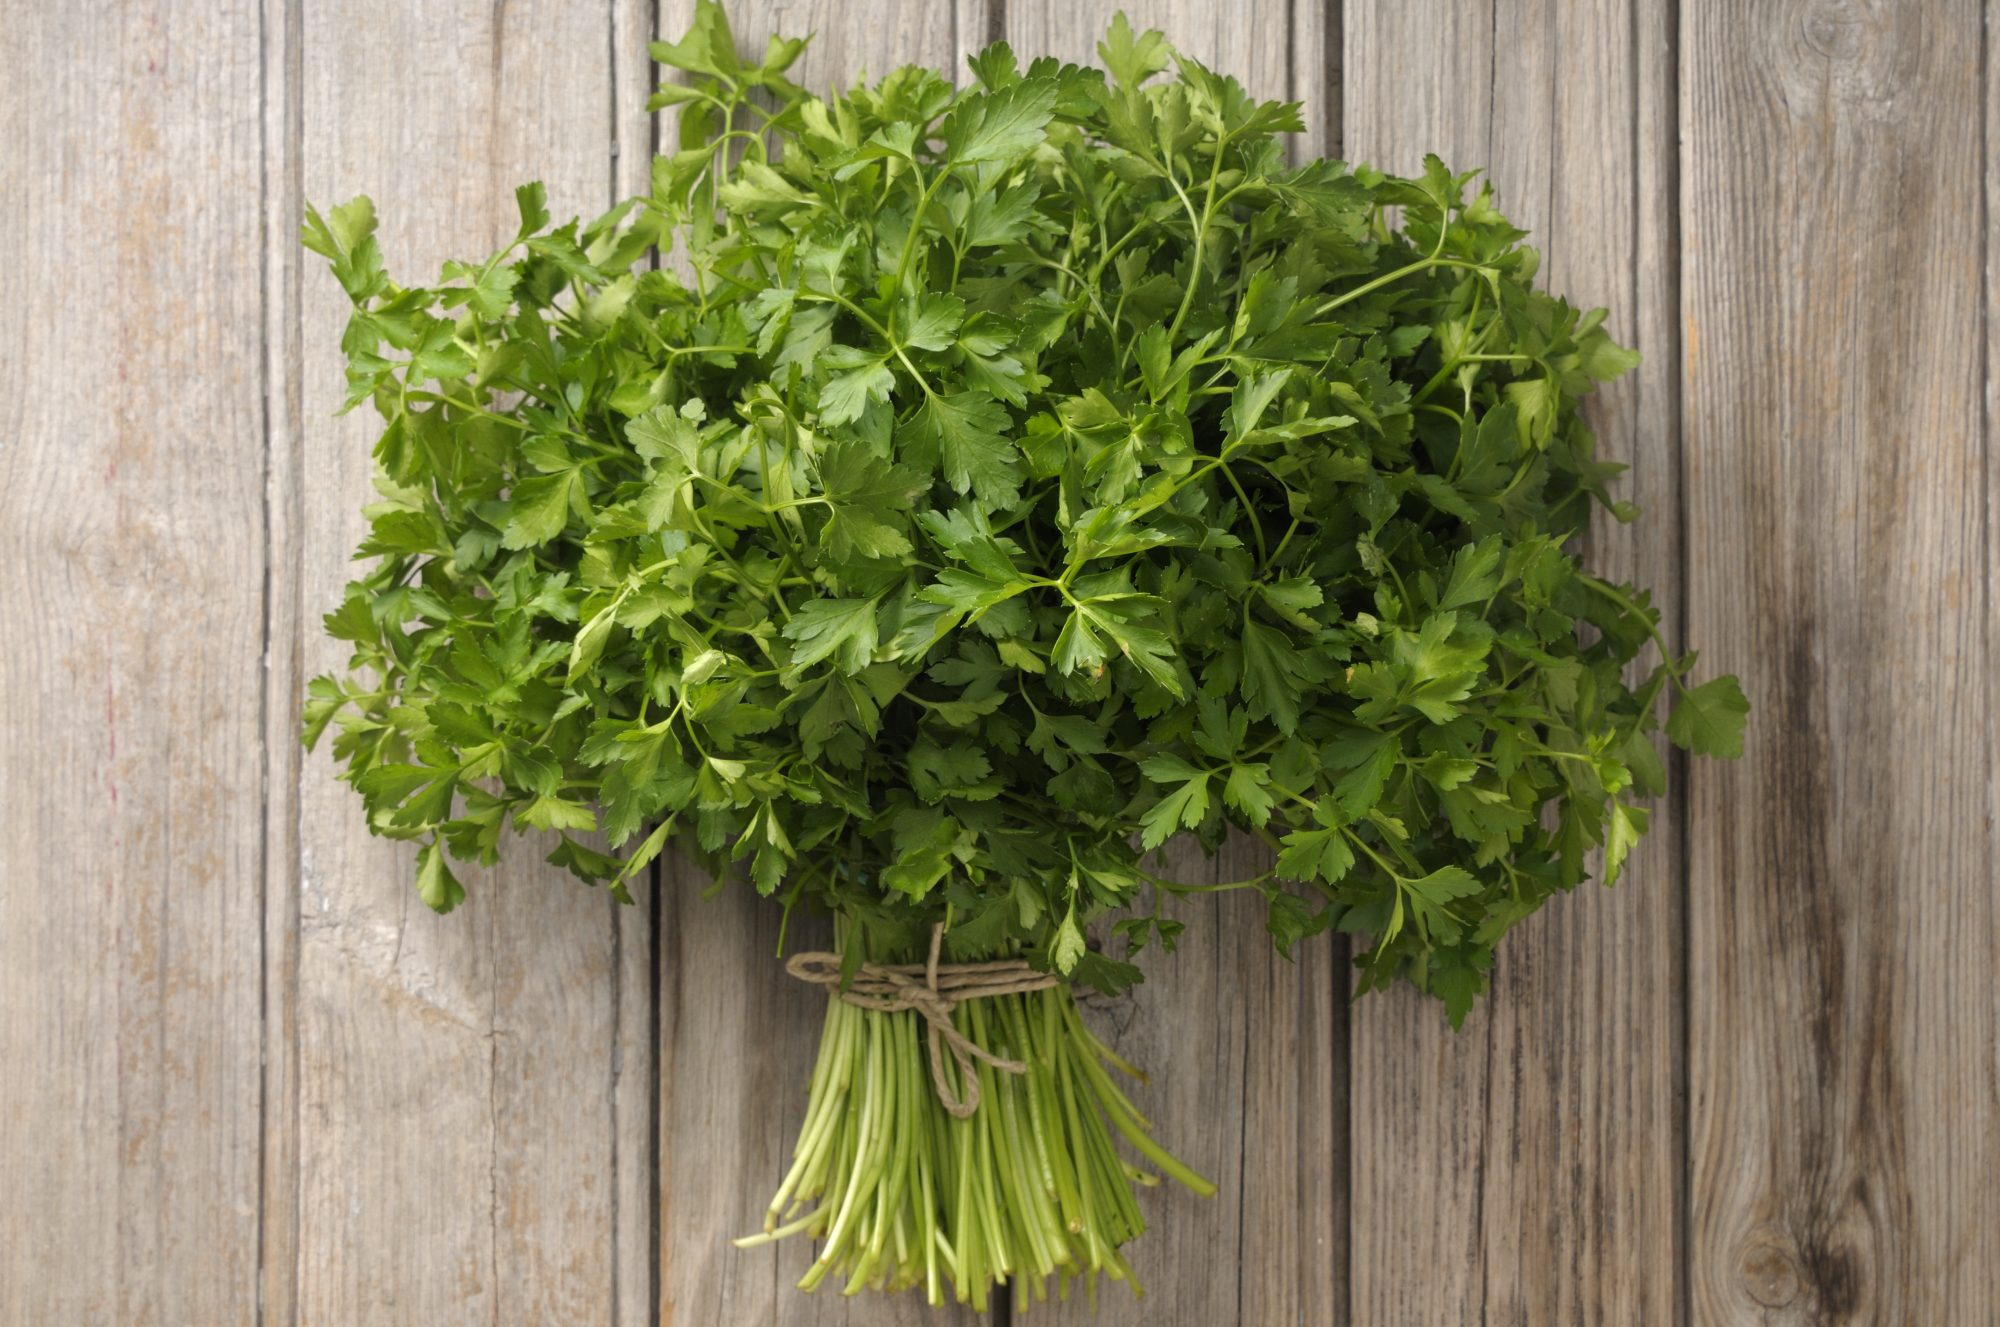 RX_1610_Health_Foods That Fight Acid Reflux_Parsley